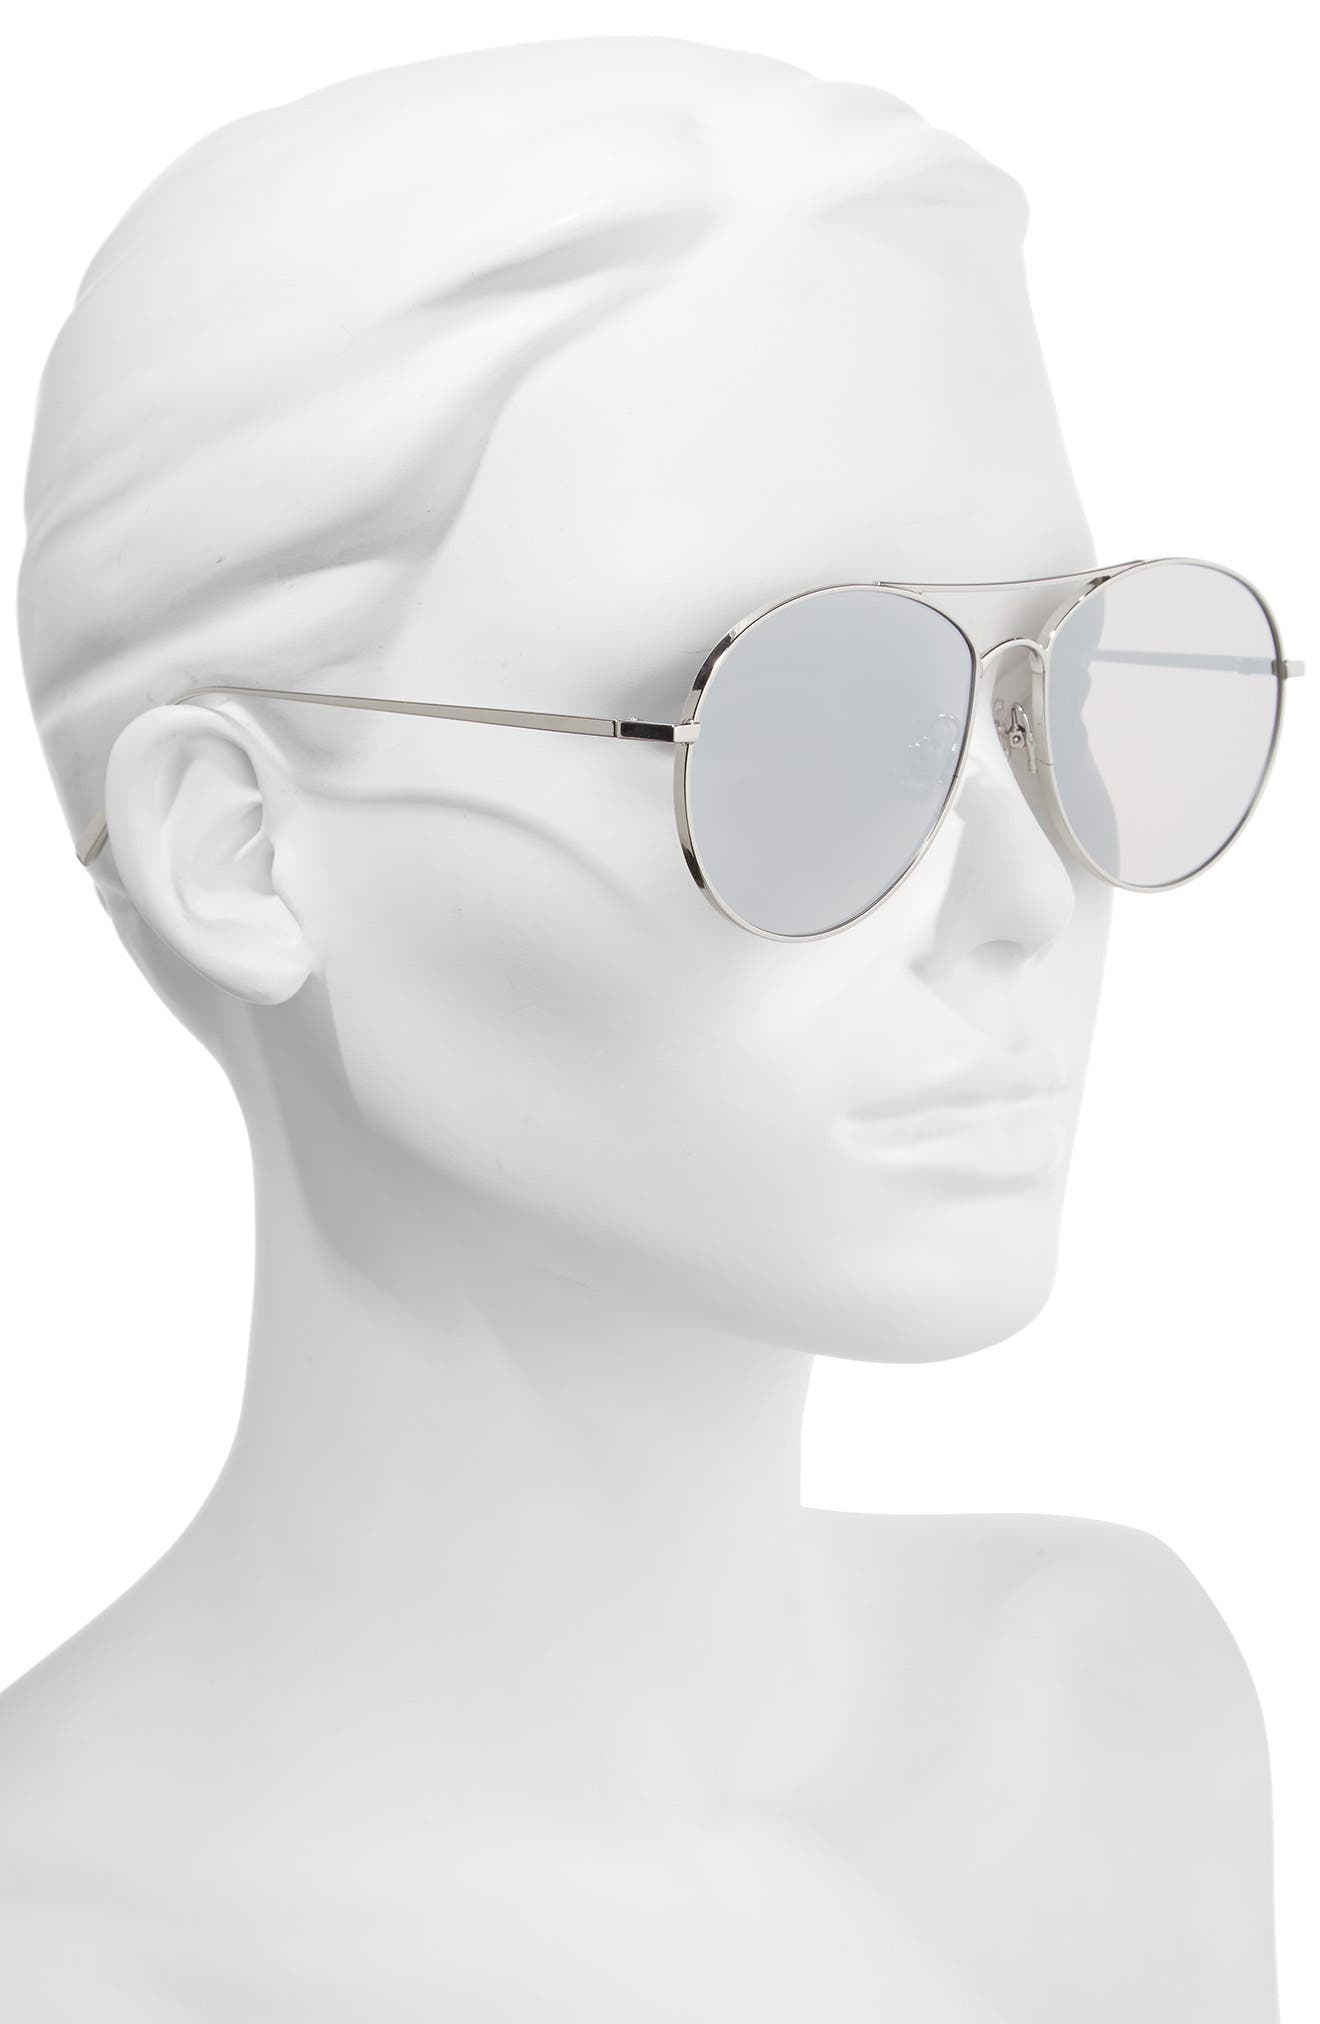 Ranny Ring 58mm Aviator Sunglasses,                             Alternate thumbnail 2, color,                             040